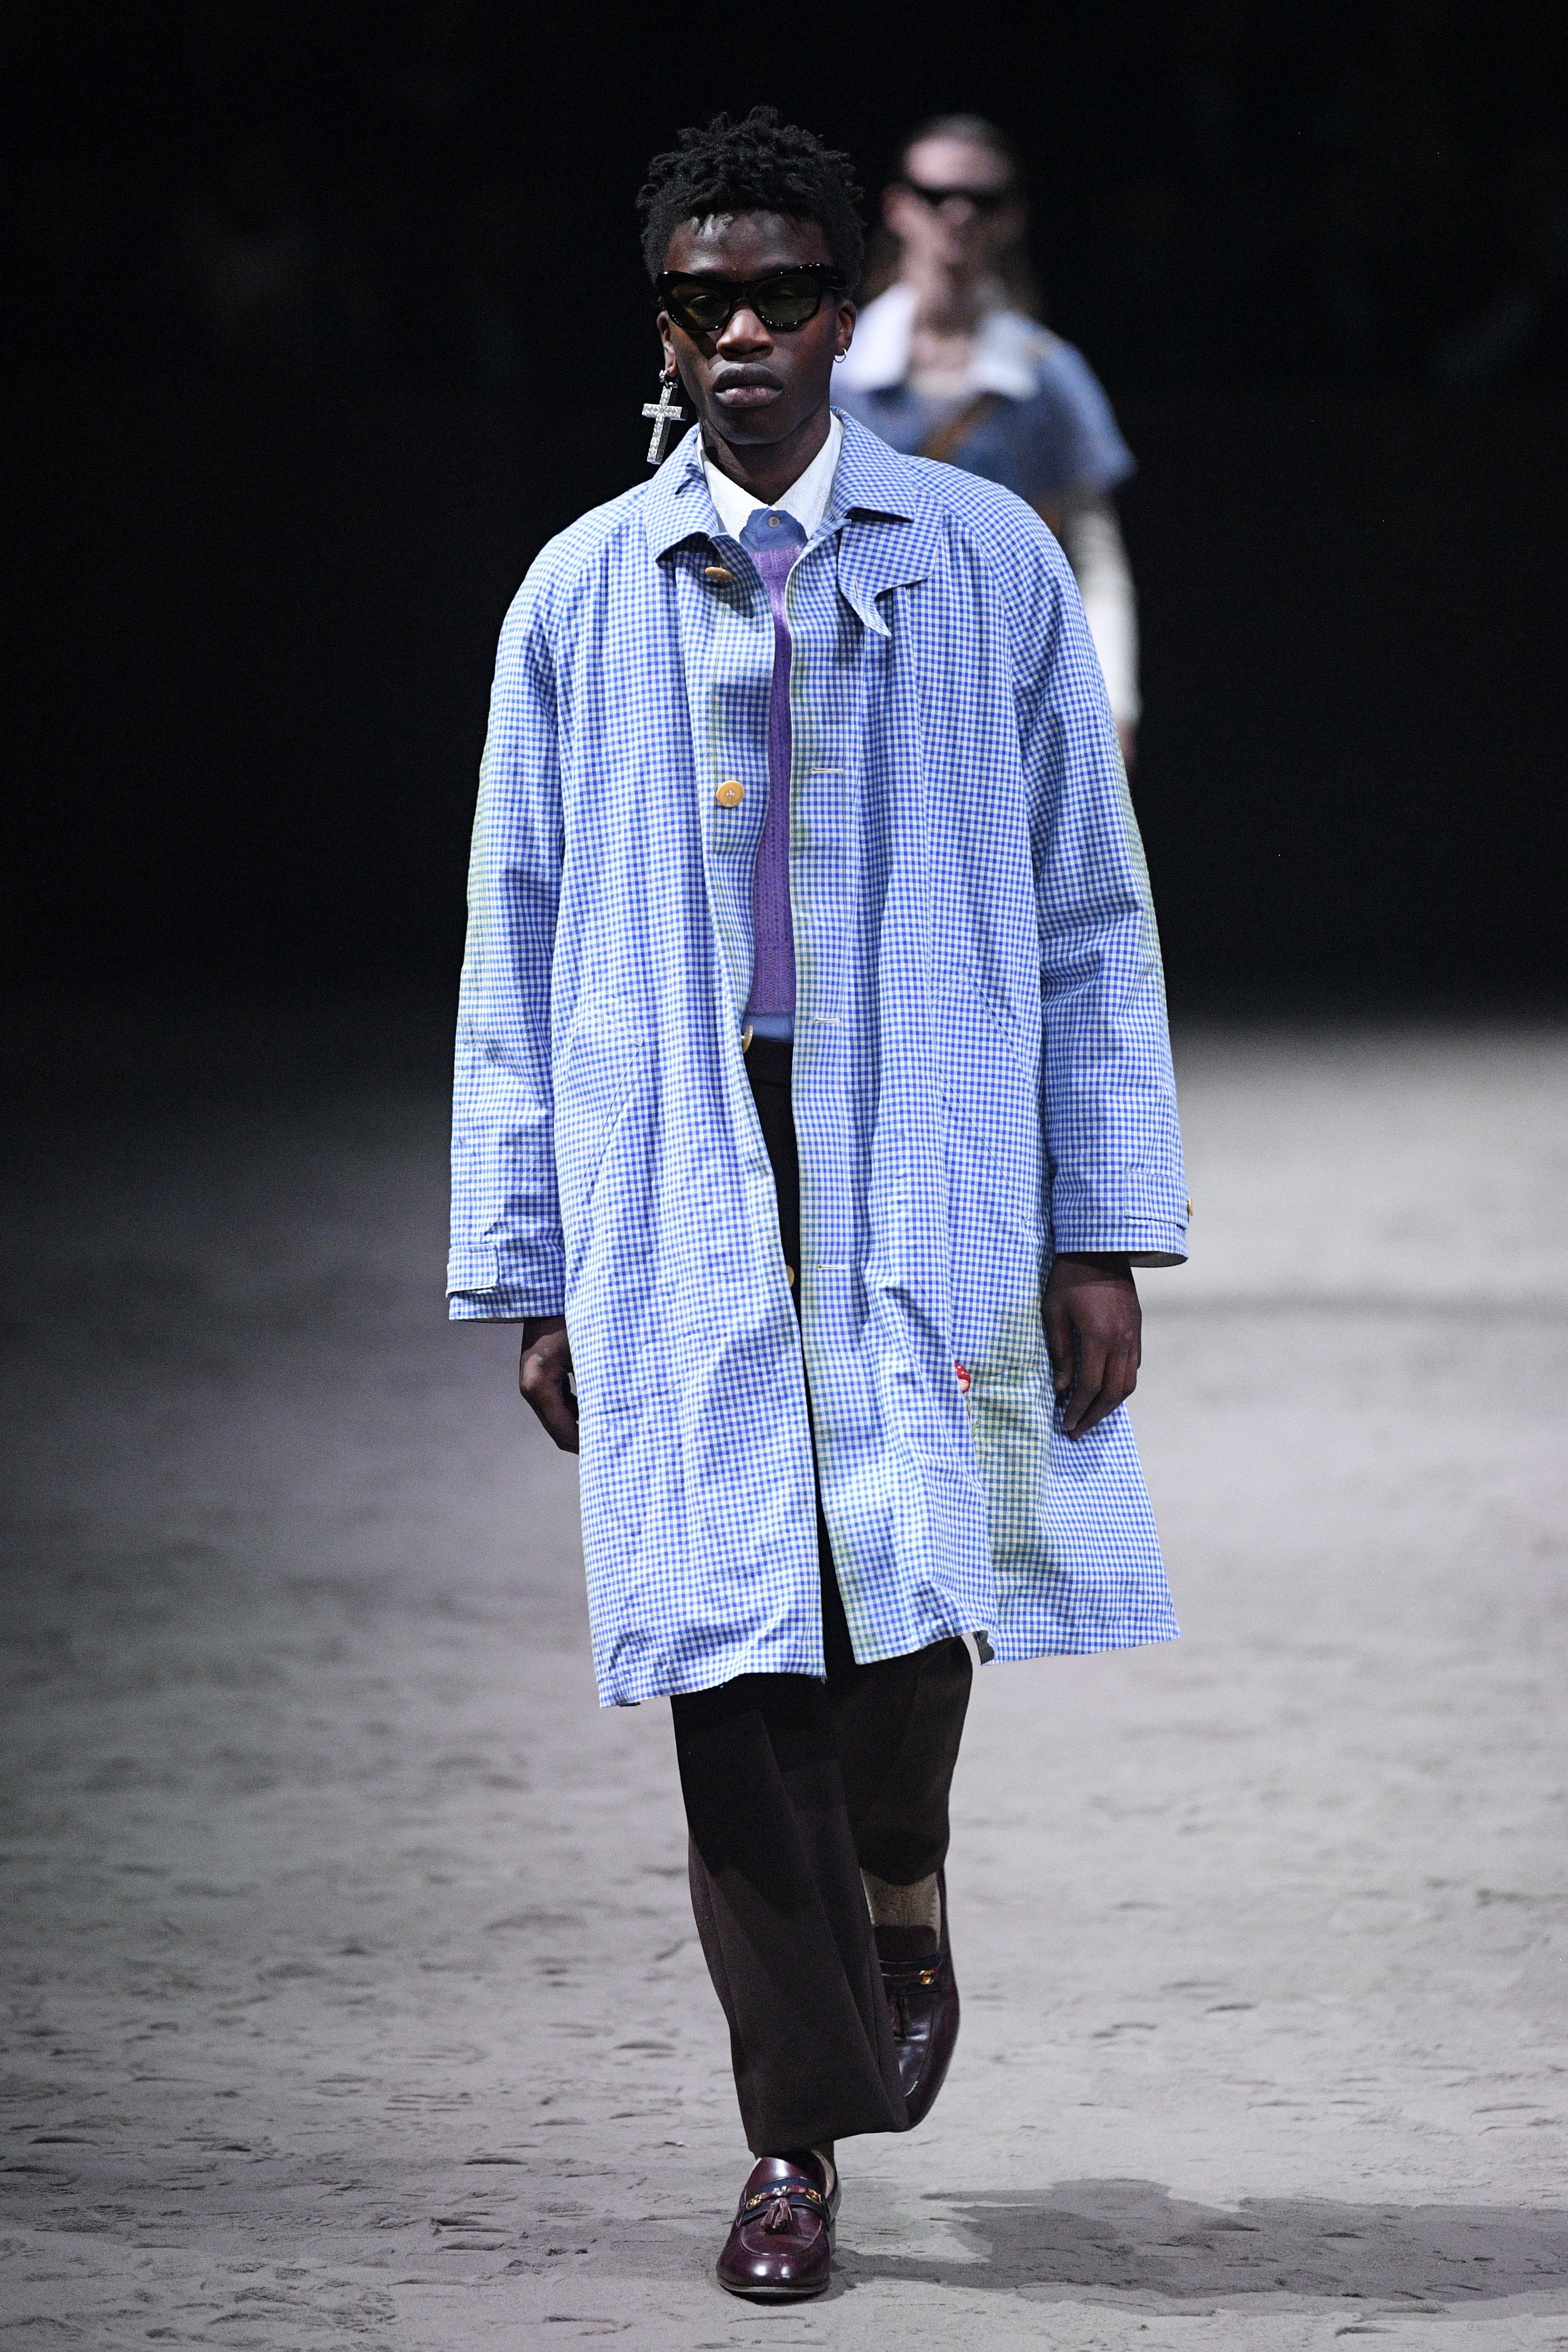 Gucci - Runway - Milan Menswear Fashion Week Fall/Winter 2020/21